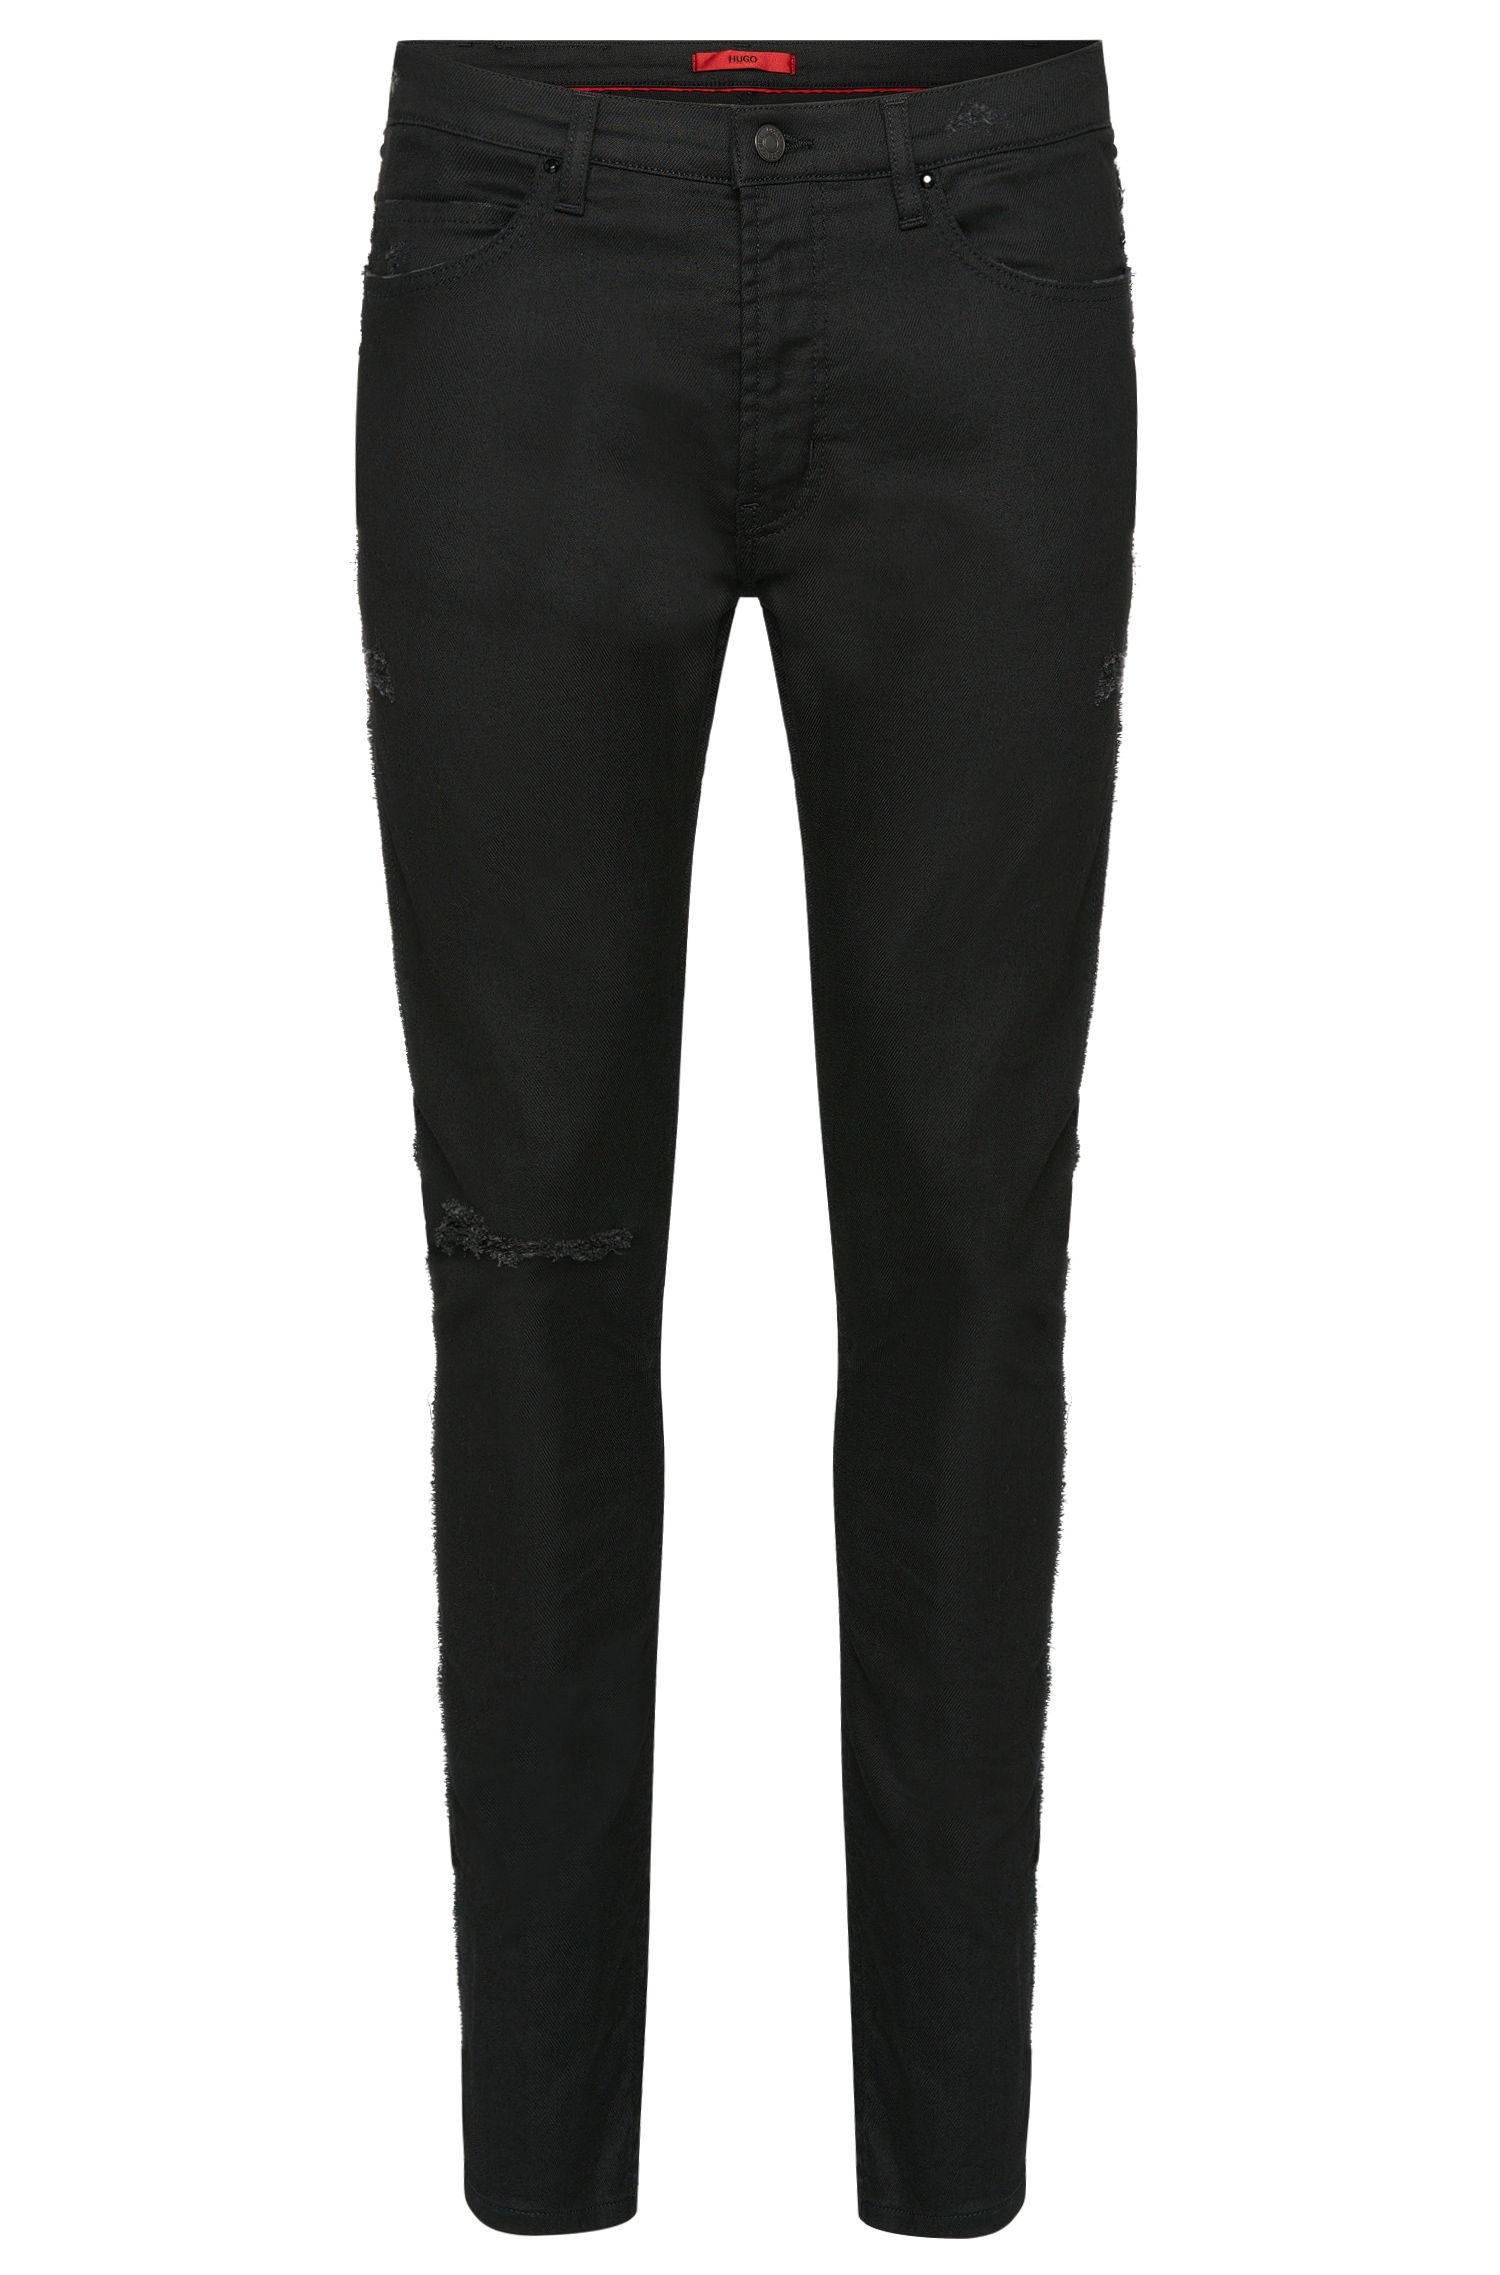 10 oz Stretch Cotton Blend Jeans, Skinny Fit | Hugo 734, Black